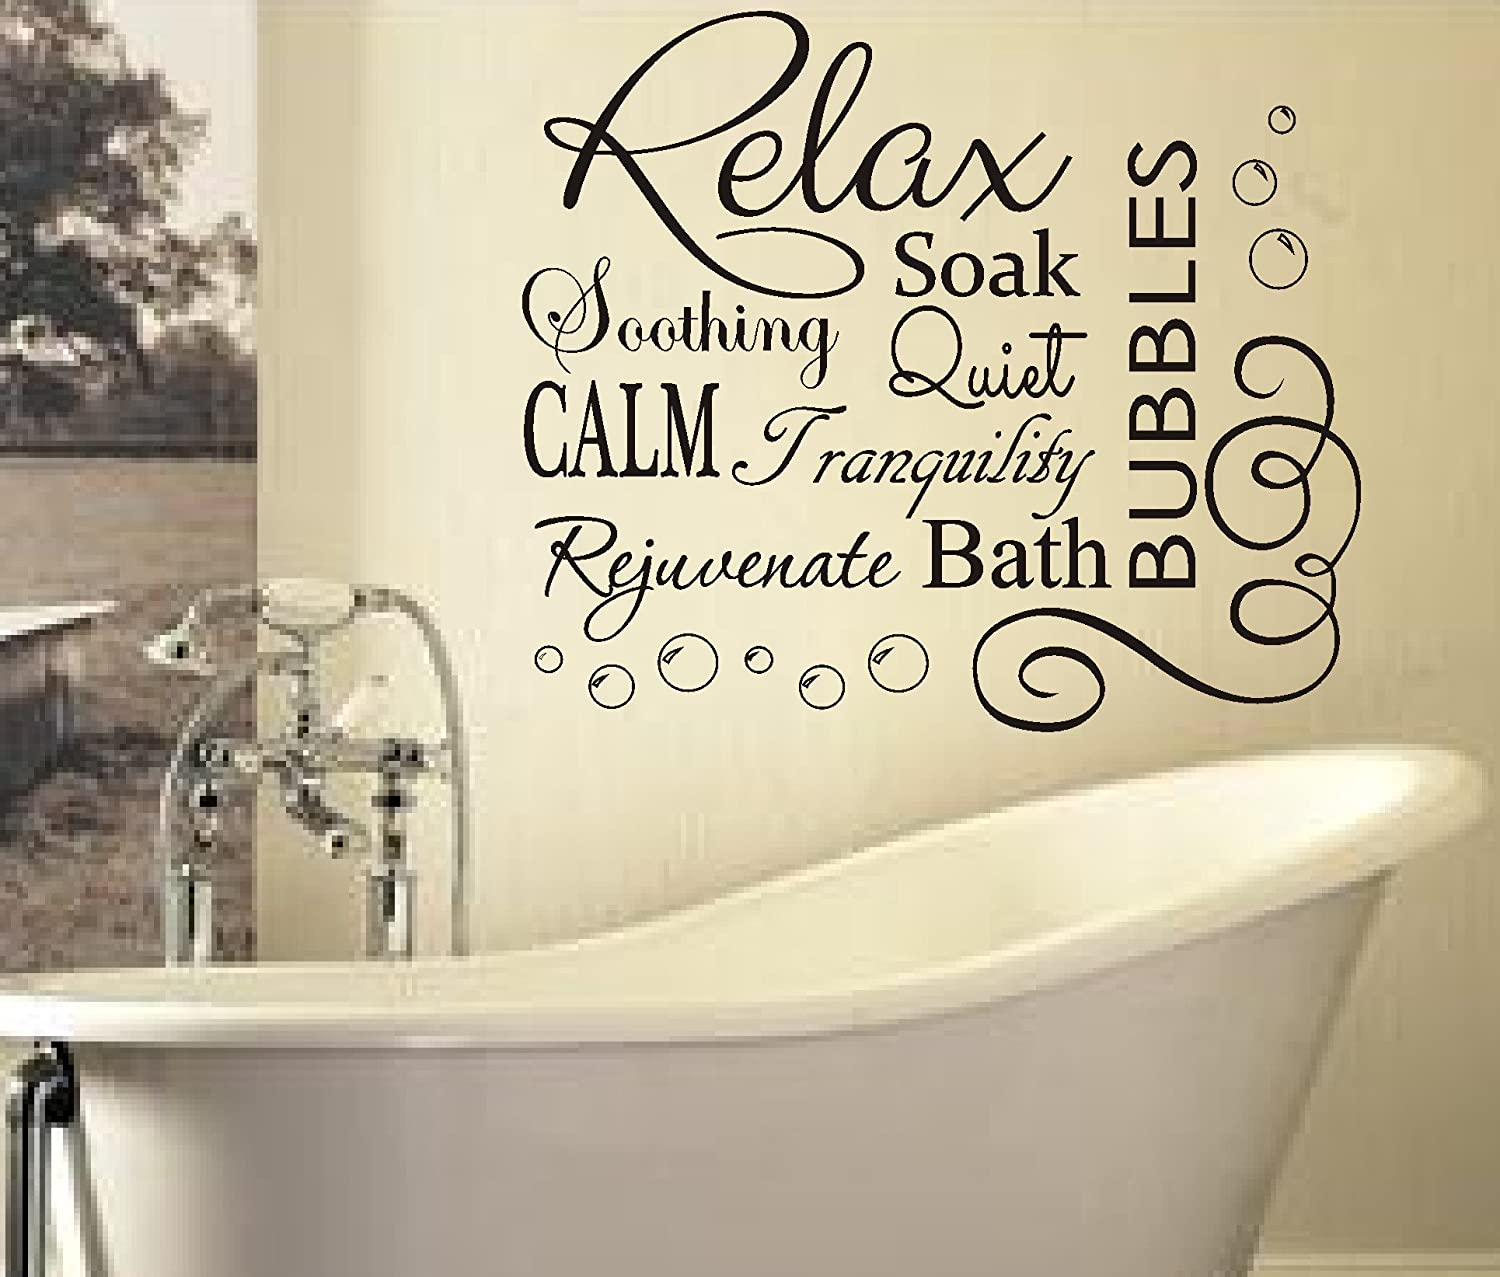 Bathroom wall art stickers - Relax Soak Bubbles Bath Ar Quote Wall Art Sticker Decal Vinyl Diy Home Bathroom Black 76x65cm Amazon Co Uk Kitchen Home